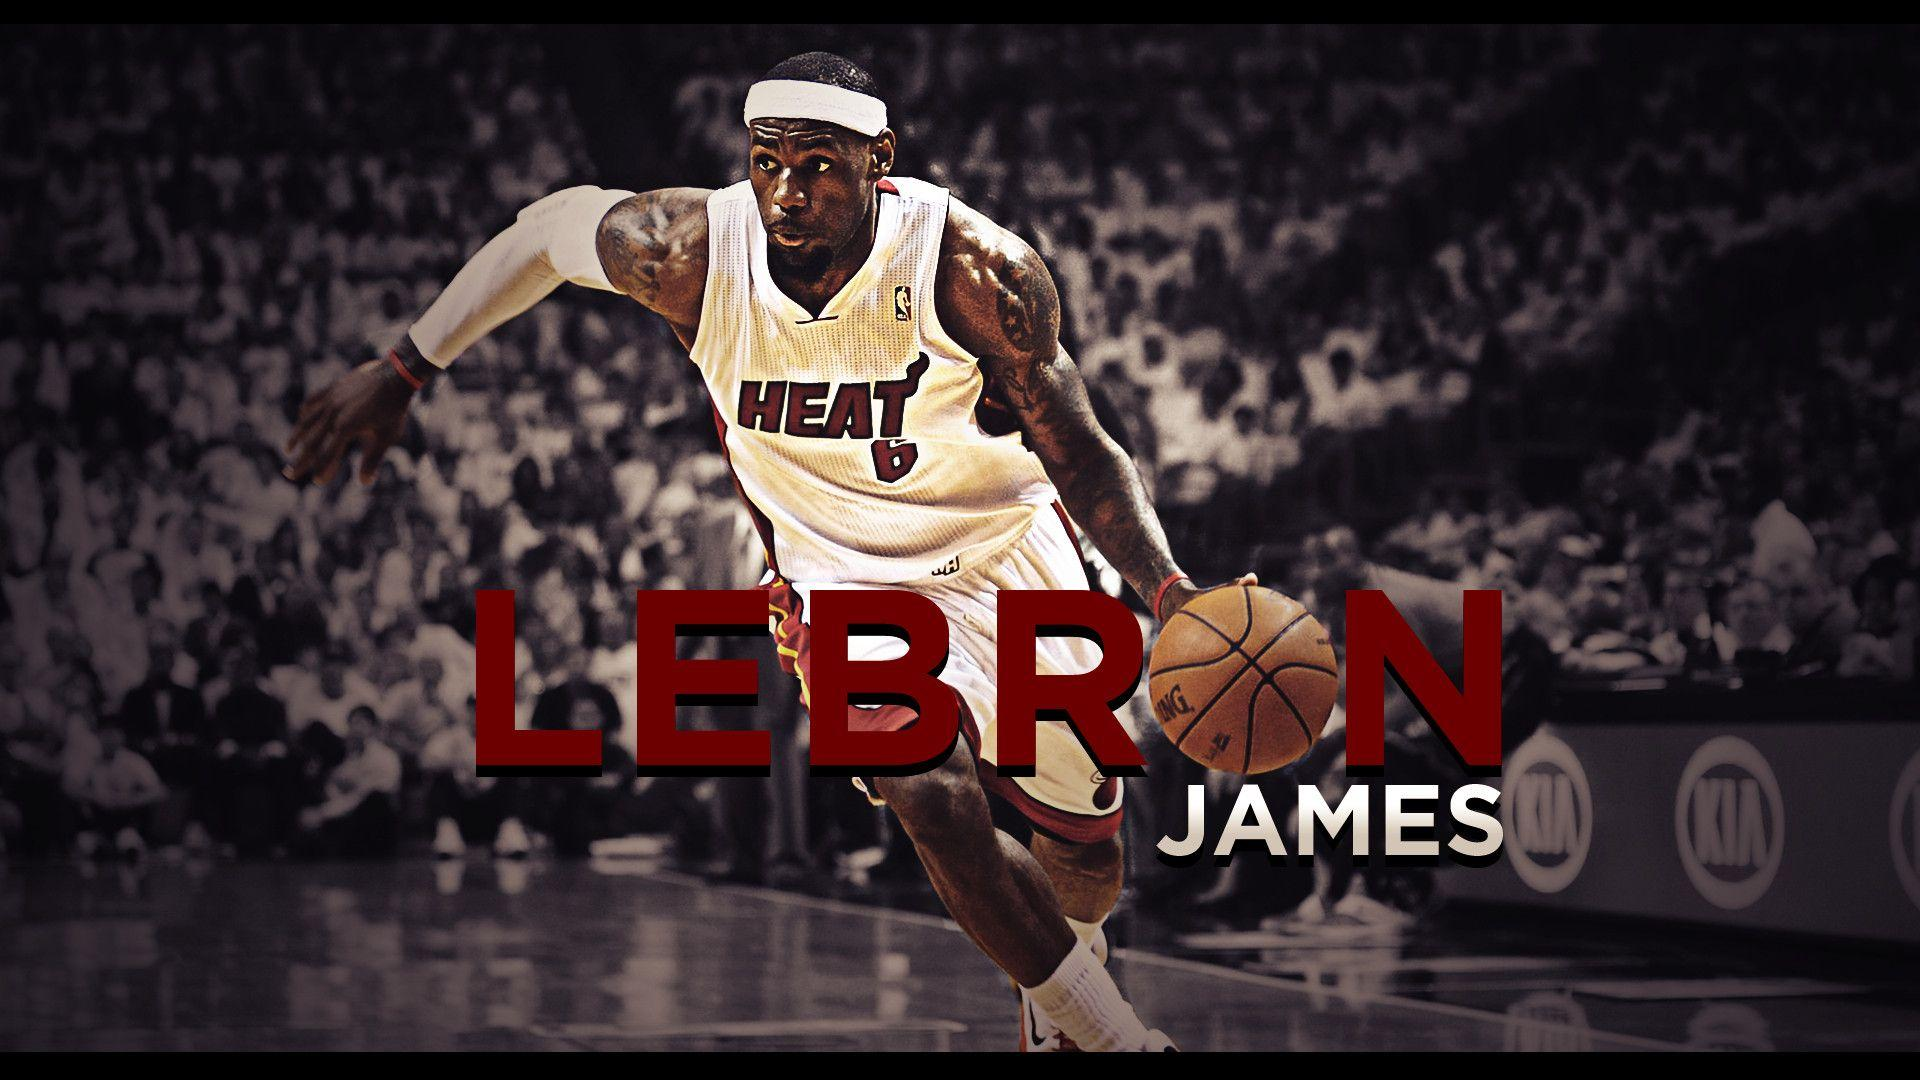 lebron james wallpapers dunk – 1554×932 High Definition Wallpapers